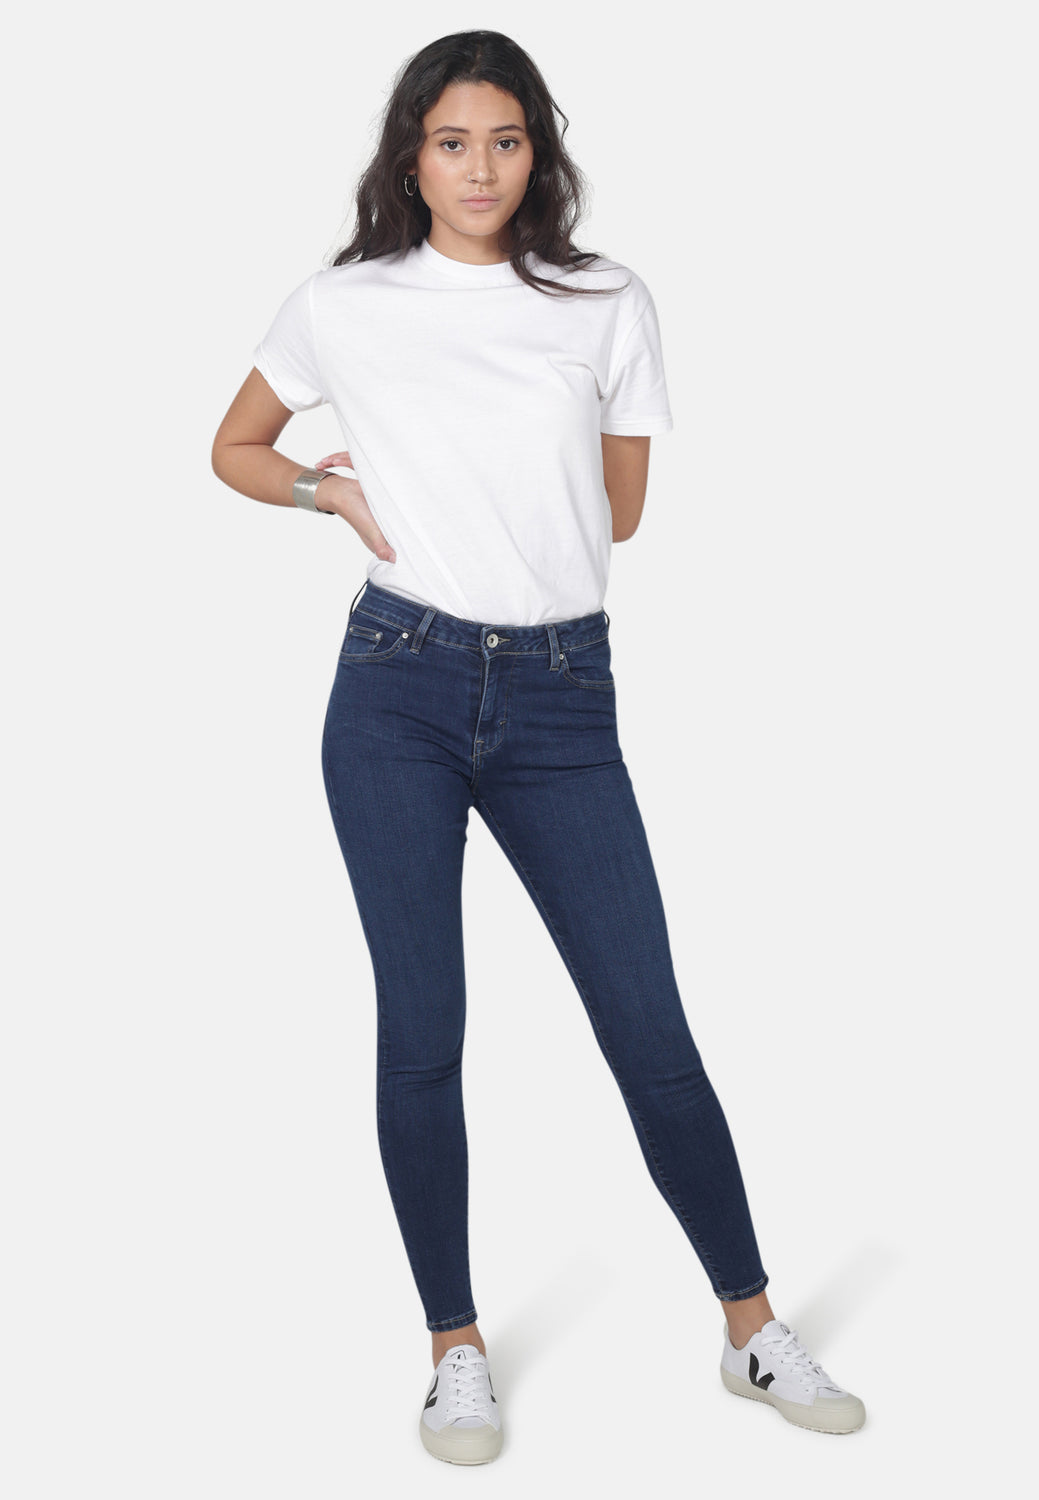 CODY // Organic Super Skinny Mid Waist Jeans in Dark Eco Wash - Monkee Genes Organic Jeans Denim - Women's Cody Monkee Genes Official  Monkee Genes Official